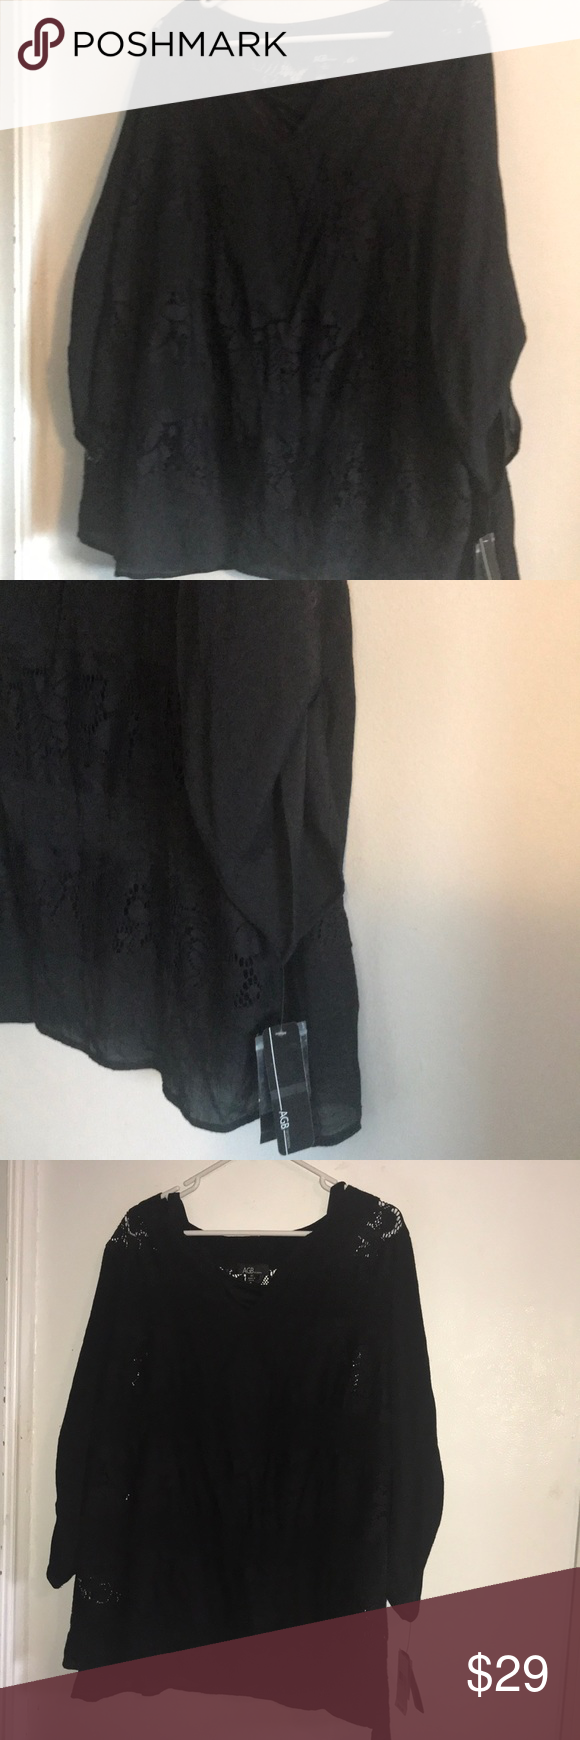 AGB Black Top with Black cami Size 3X Really nice black with cut out lace look and cami underneath AGB Tops